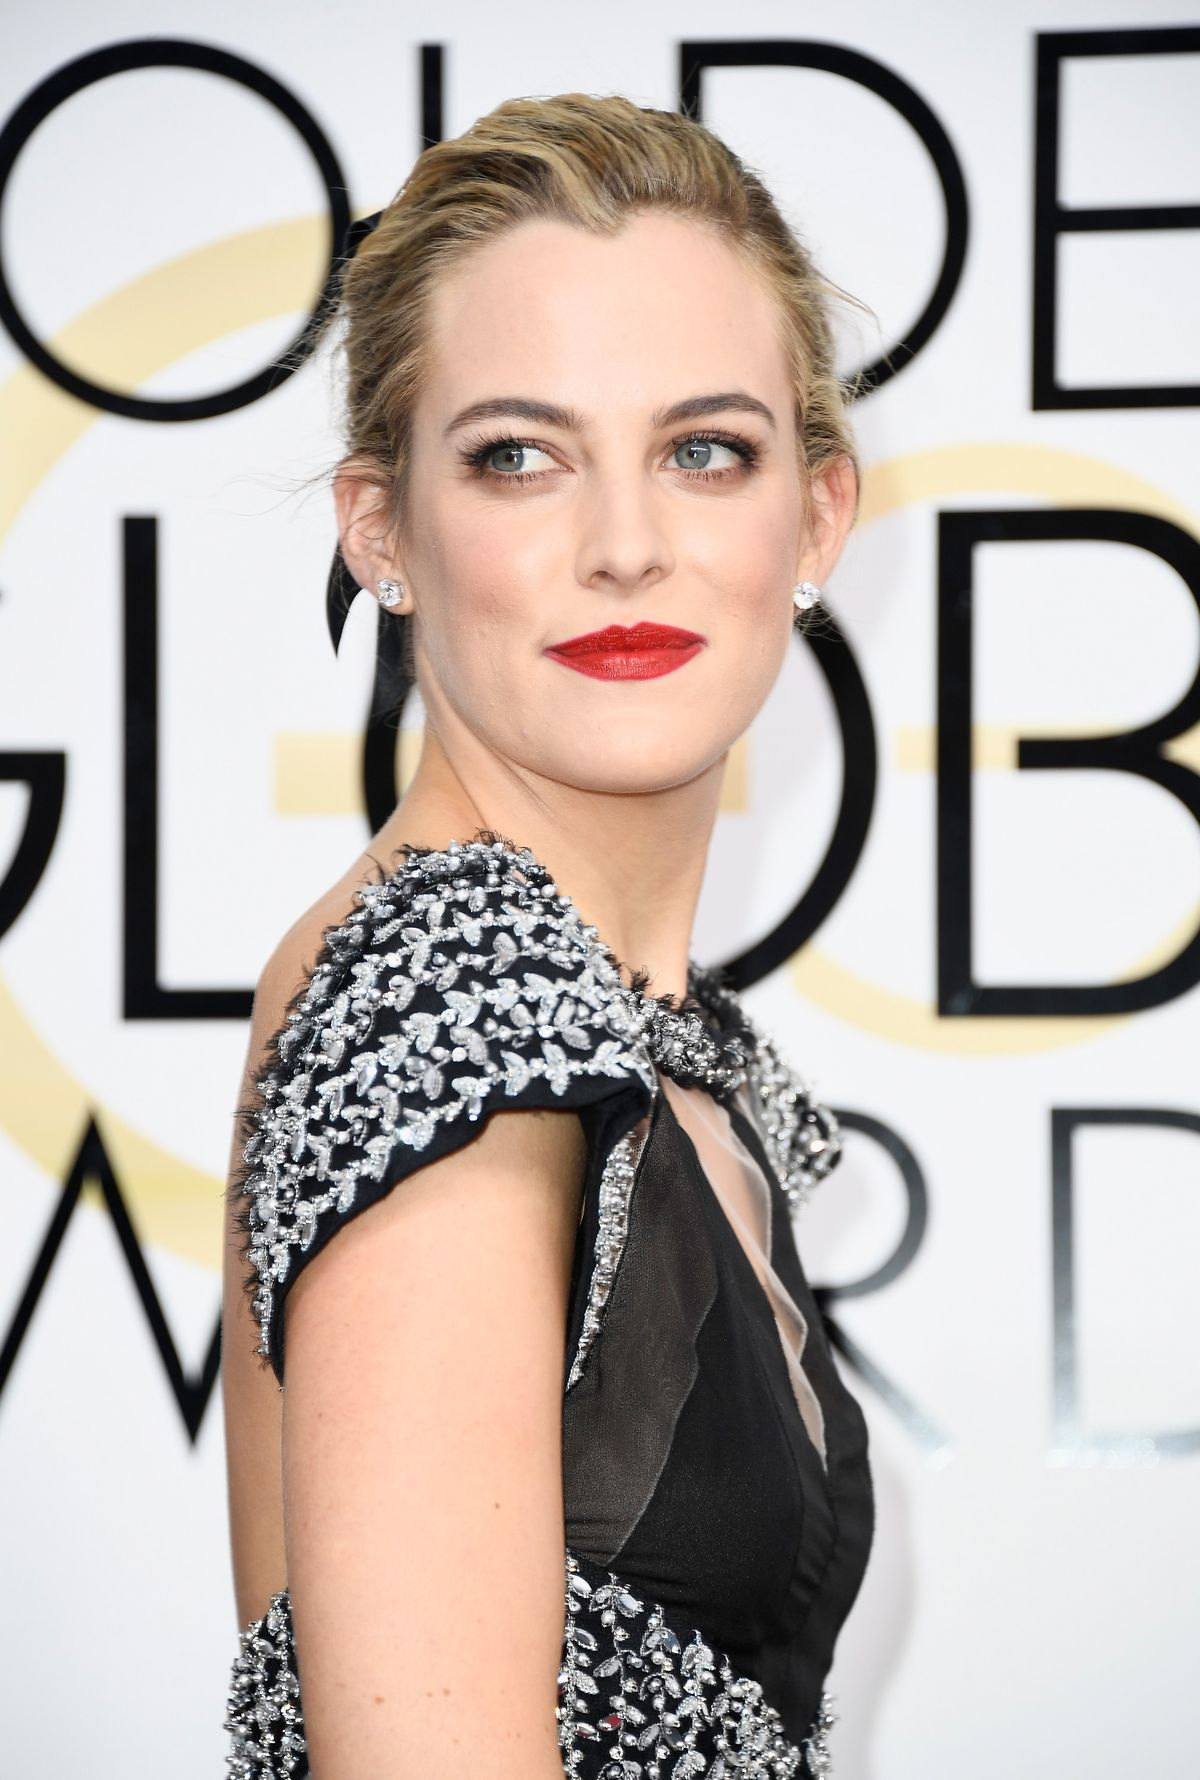 Riley Keough on the Golden Globes red carpet